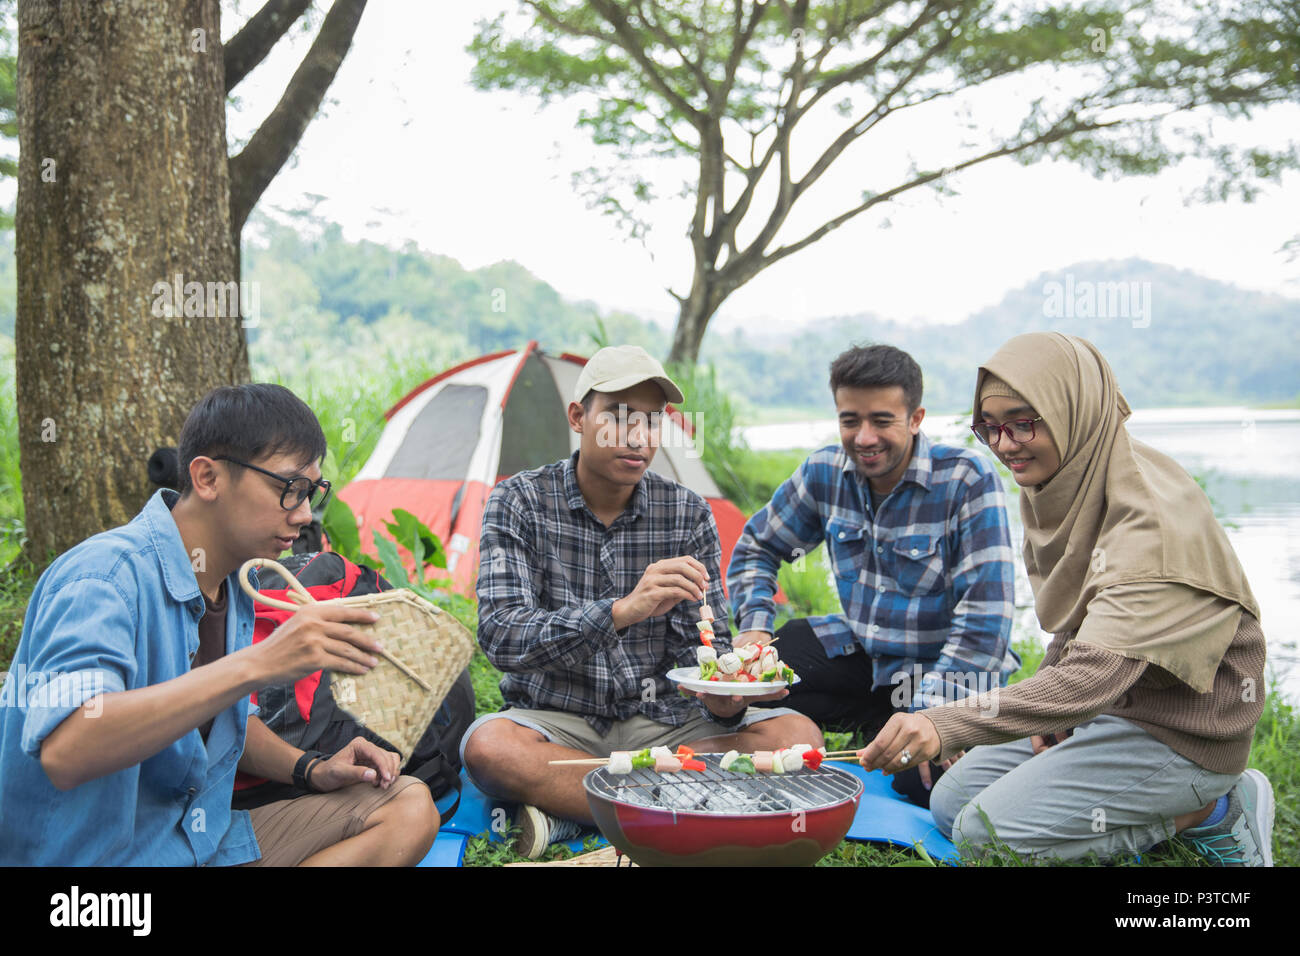 Les amis de faire un barbecue en plein air, Photo Stock